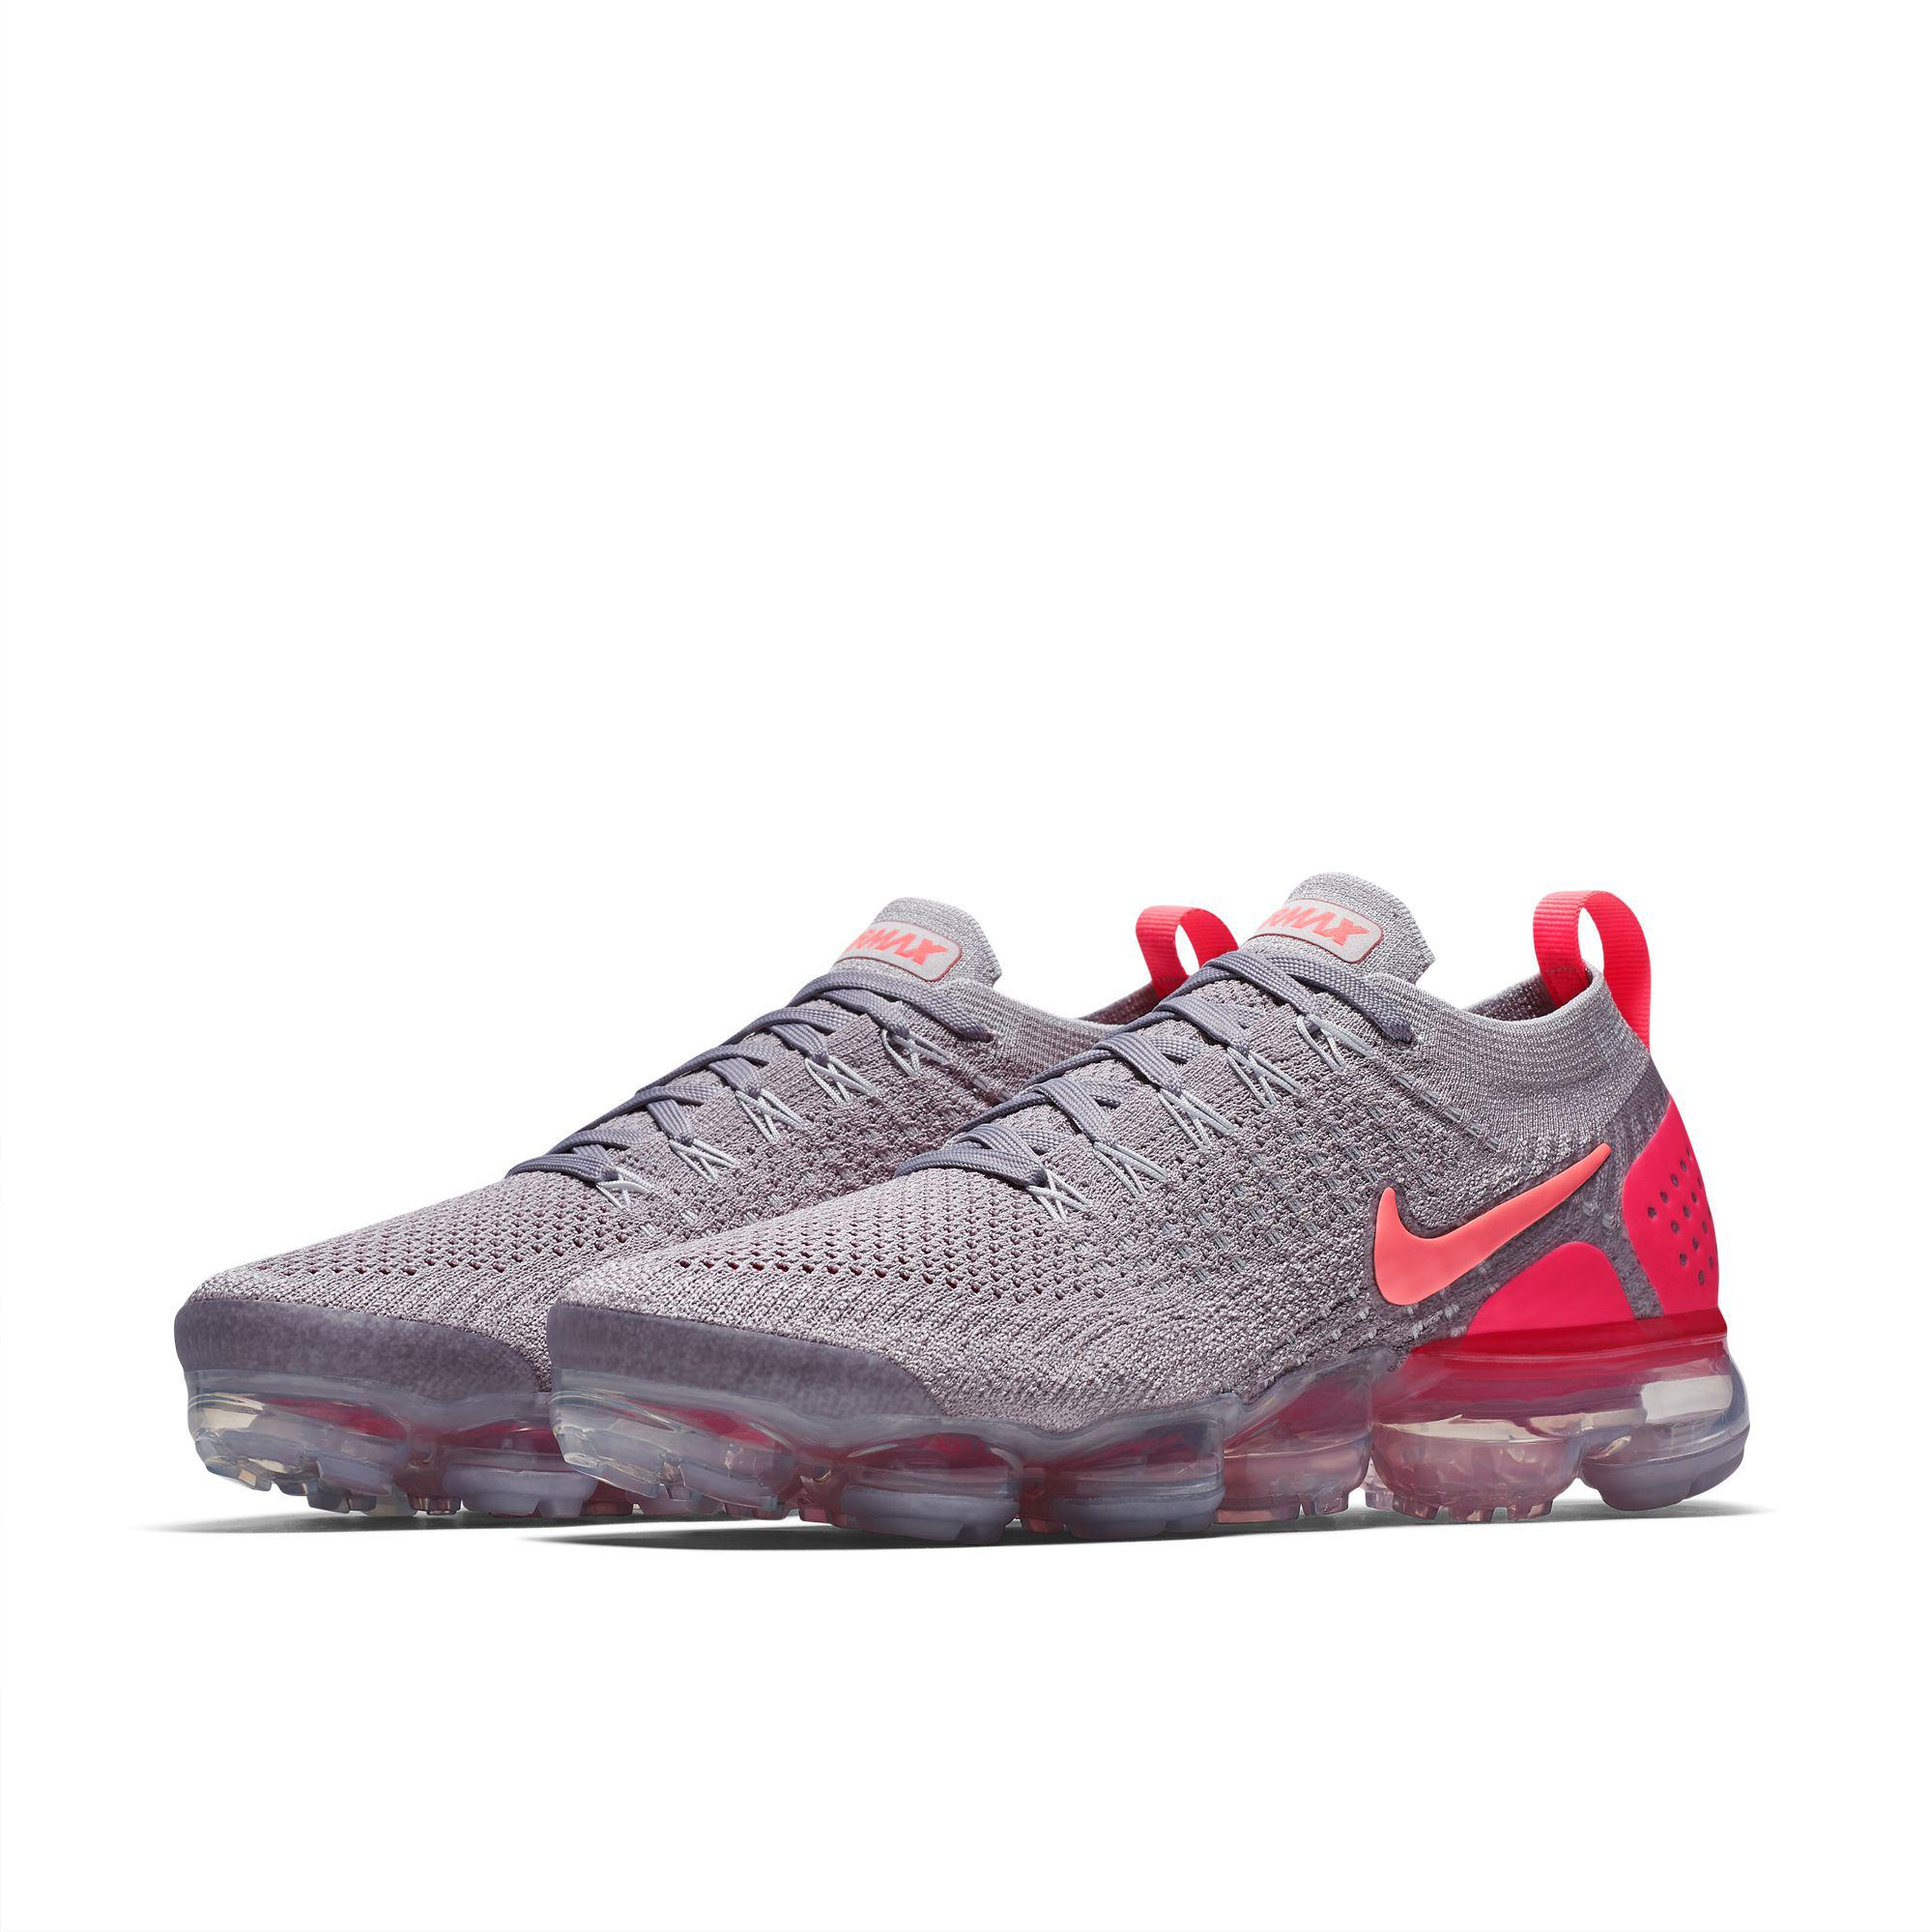 0b881073663 Nike - Multicolor Air Vapormax Flyknit 2 Running Shoes - Lyst